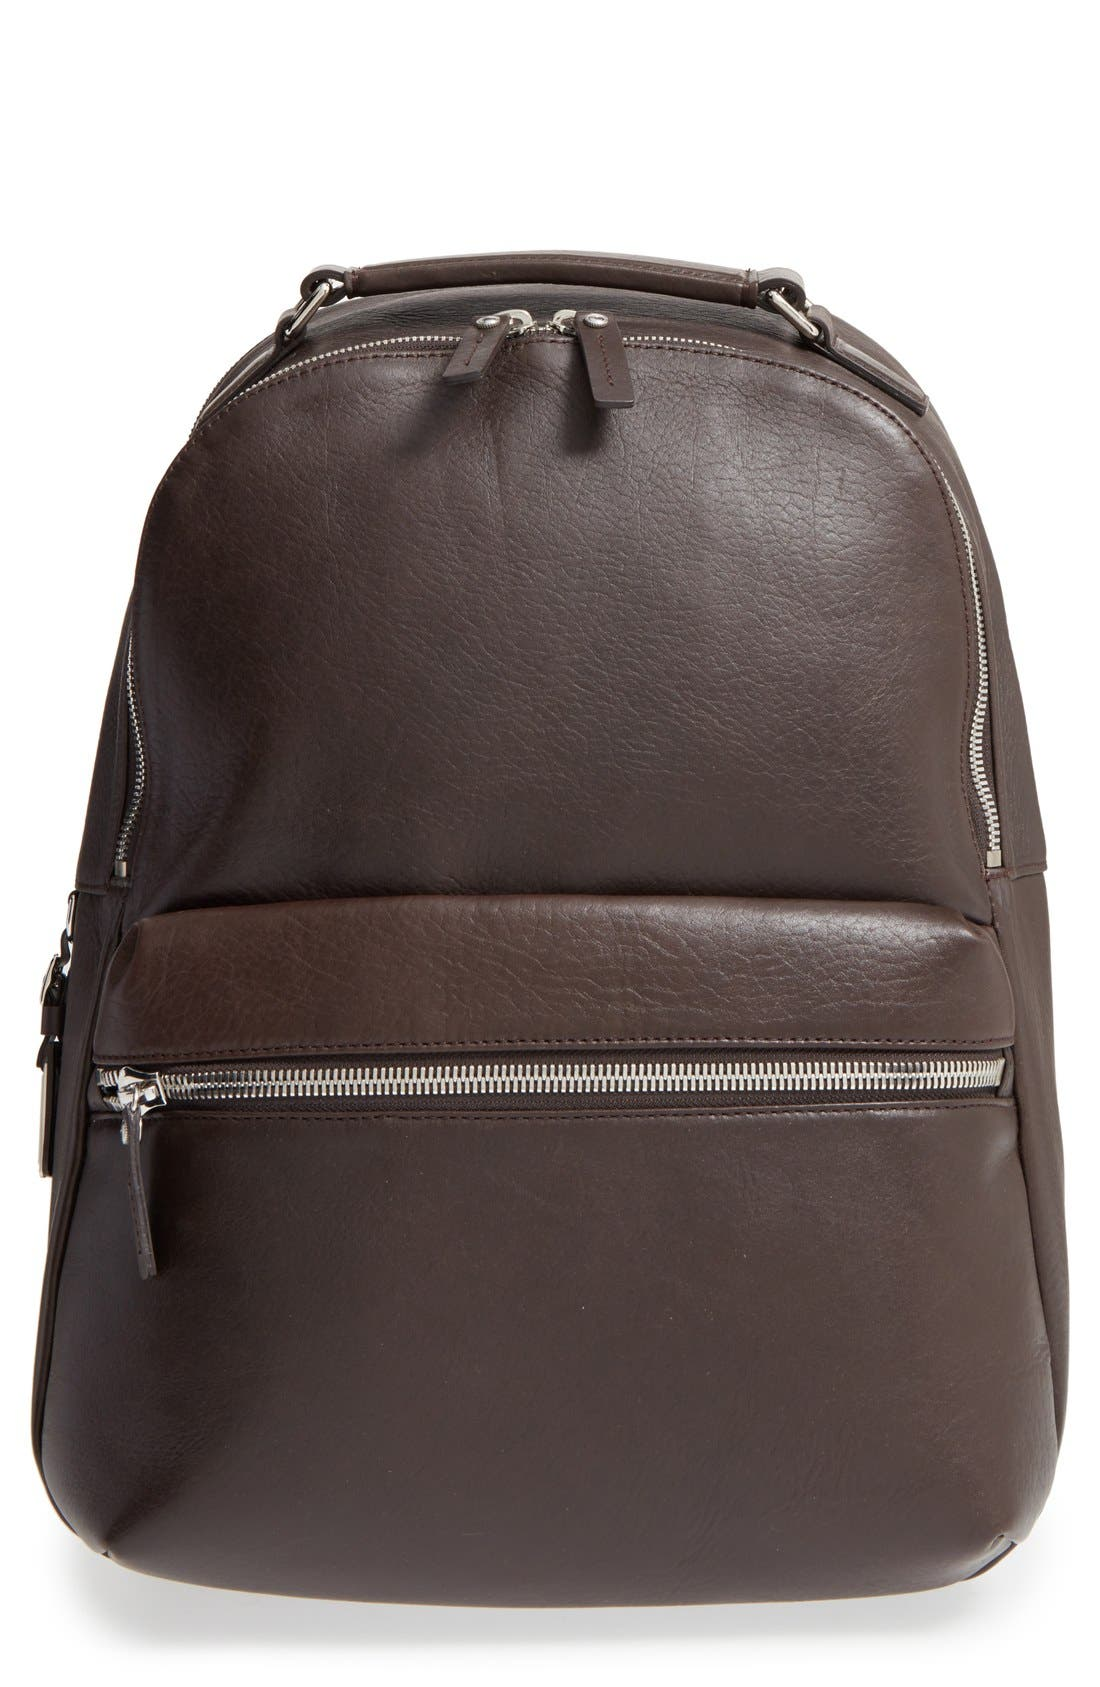 Main Image - Shinola Runwell Leather Laptop Backpack